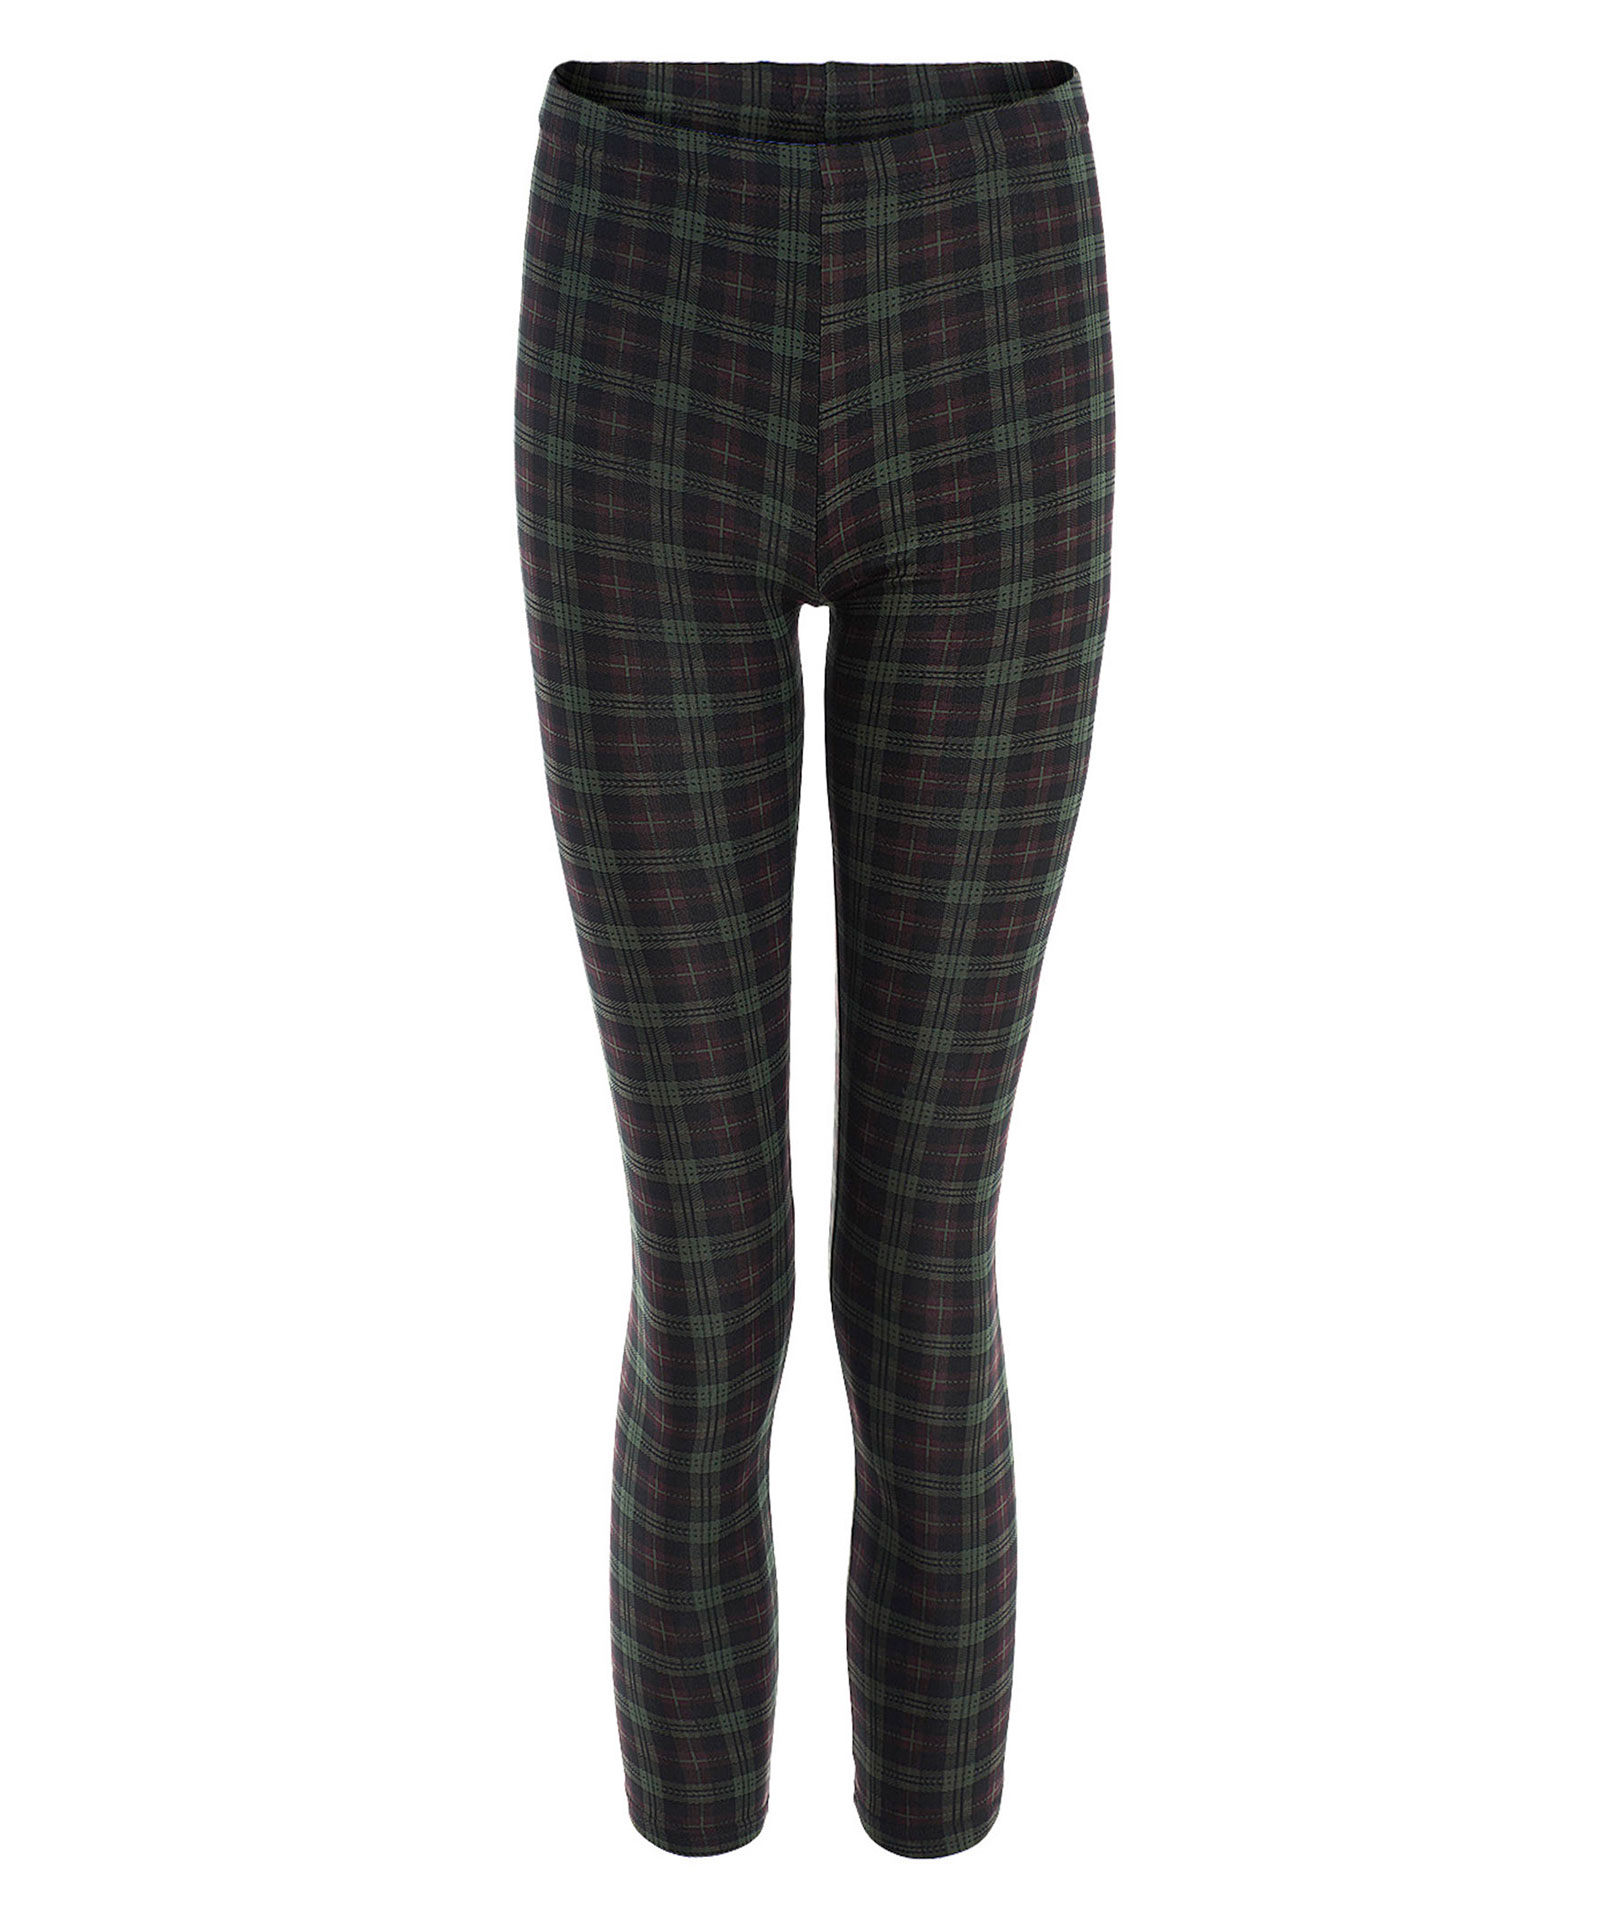 View Item Tartan Print Stretchy Leggings